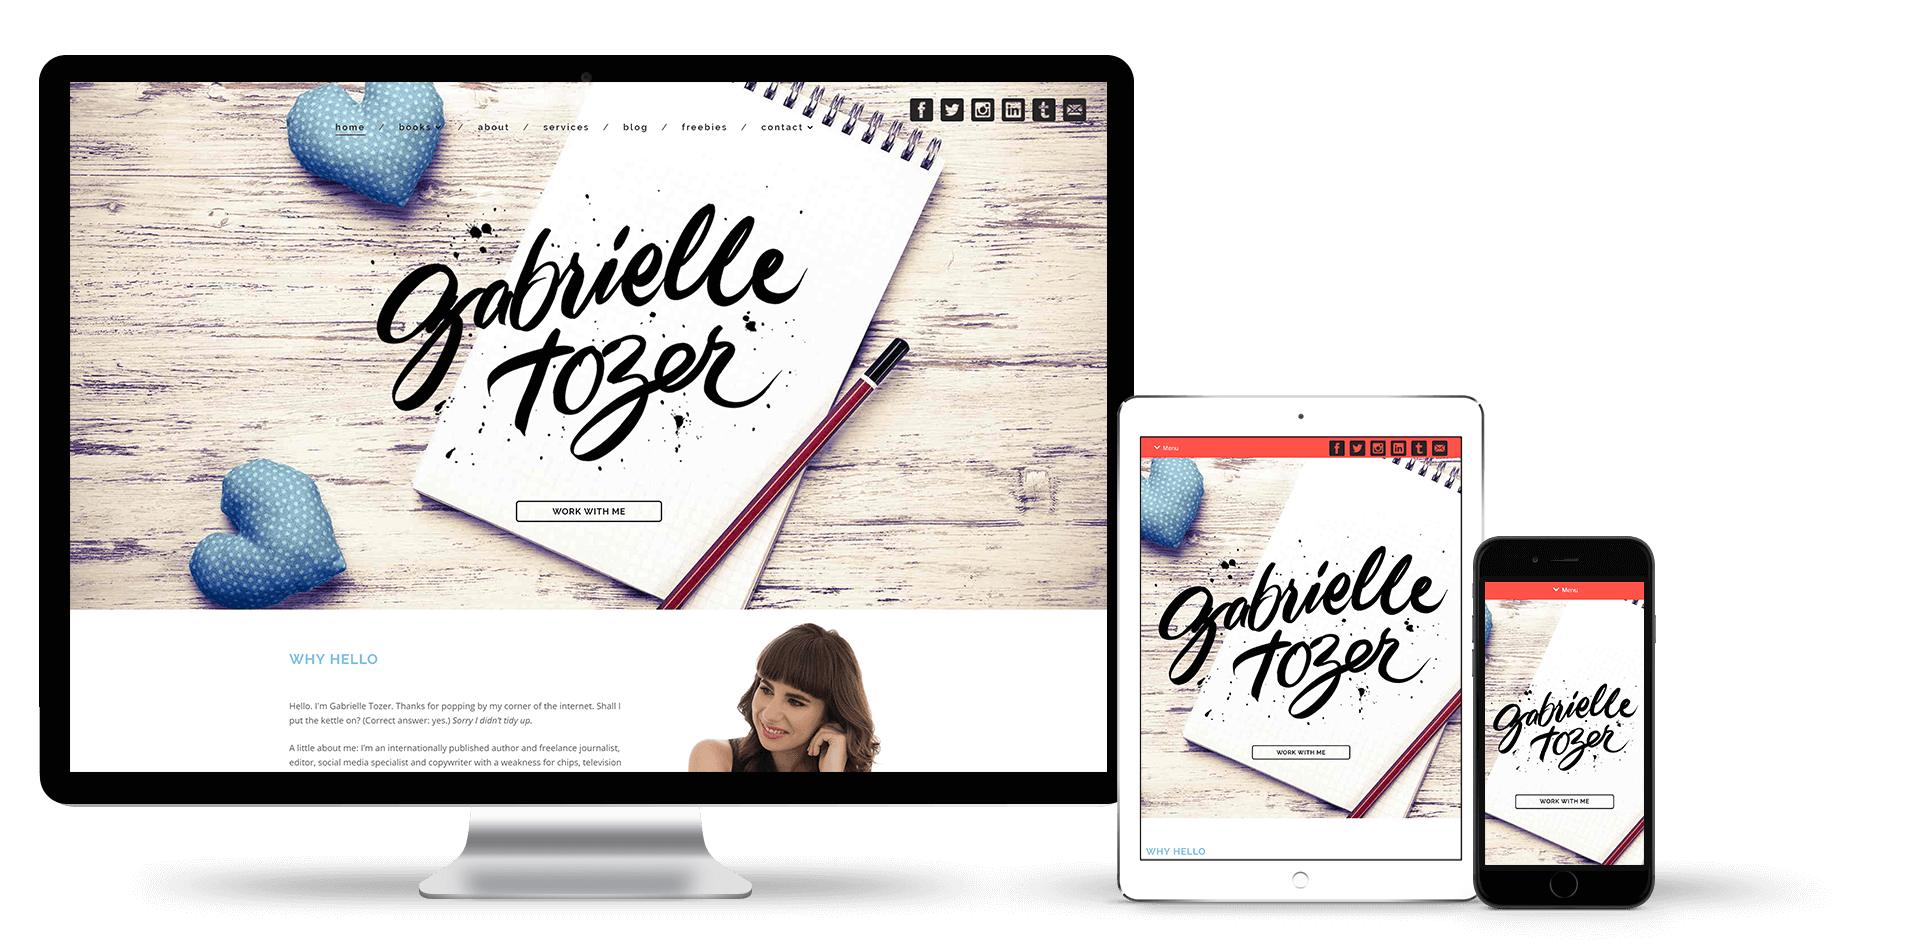 Image of the Gabrielle Tozer website design on a desktop, laptop and smart phone